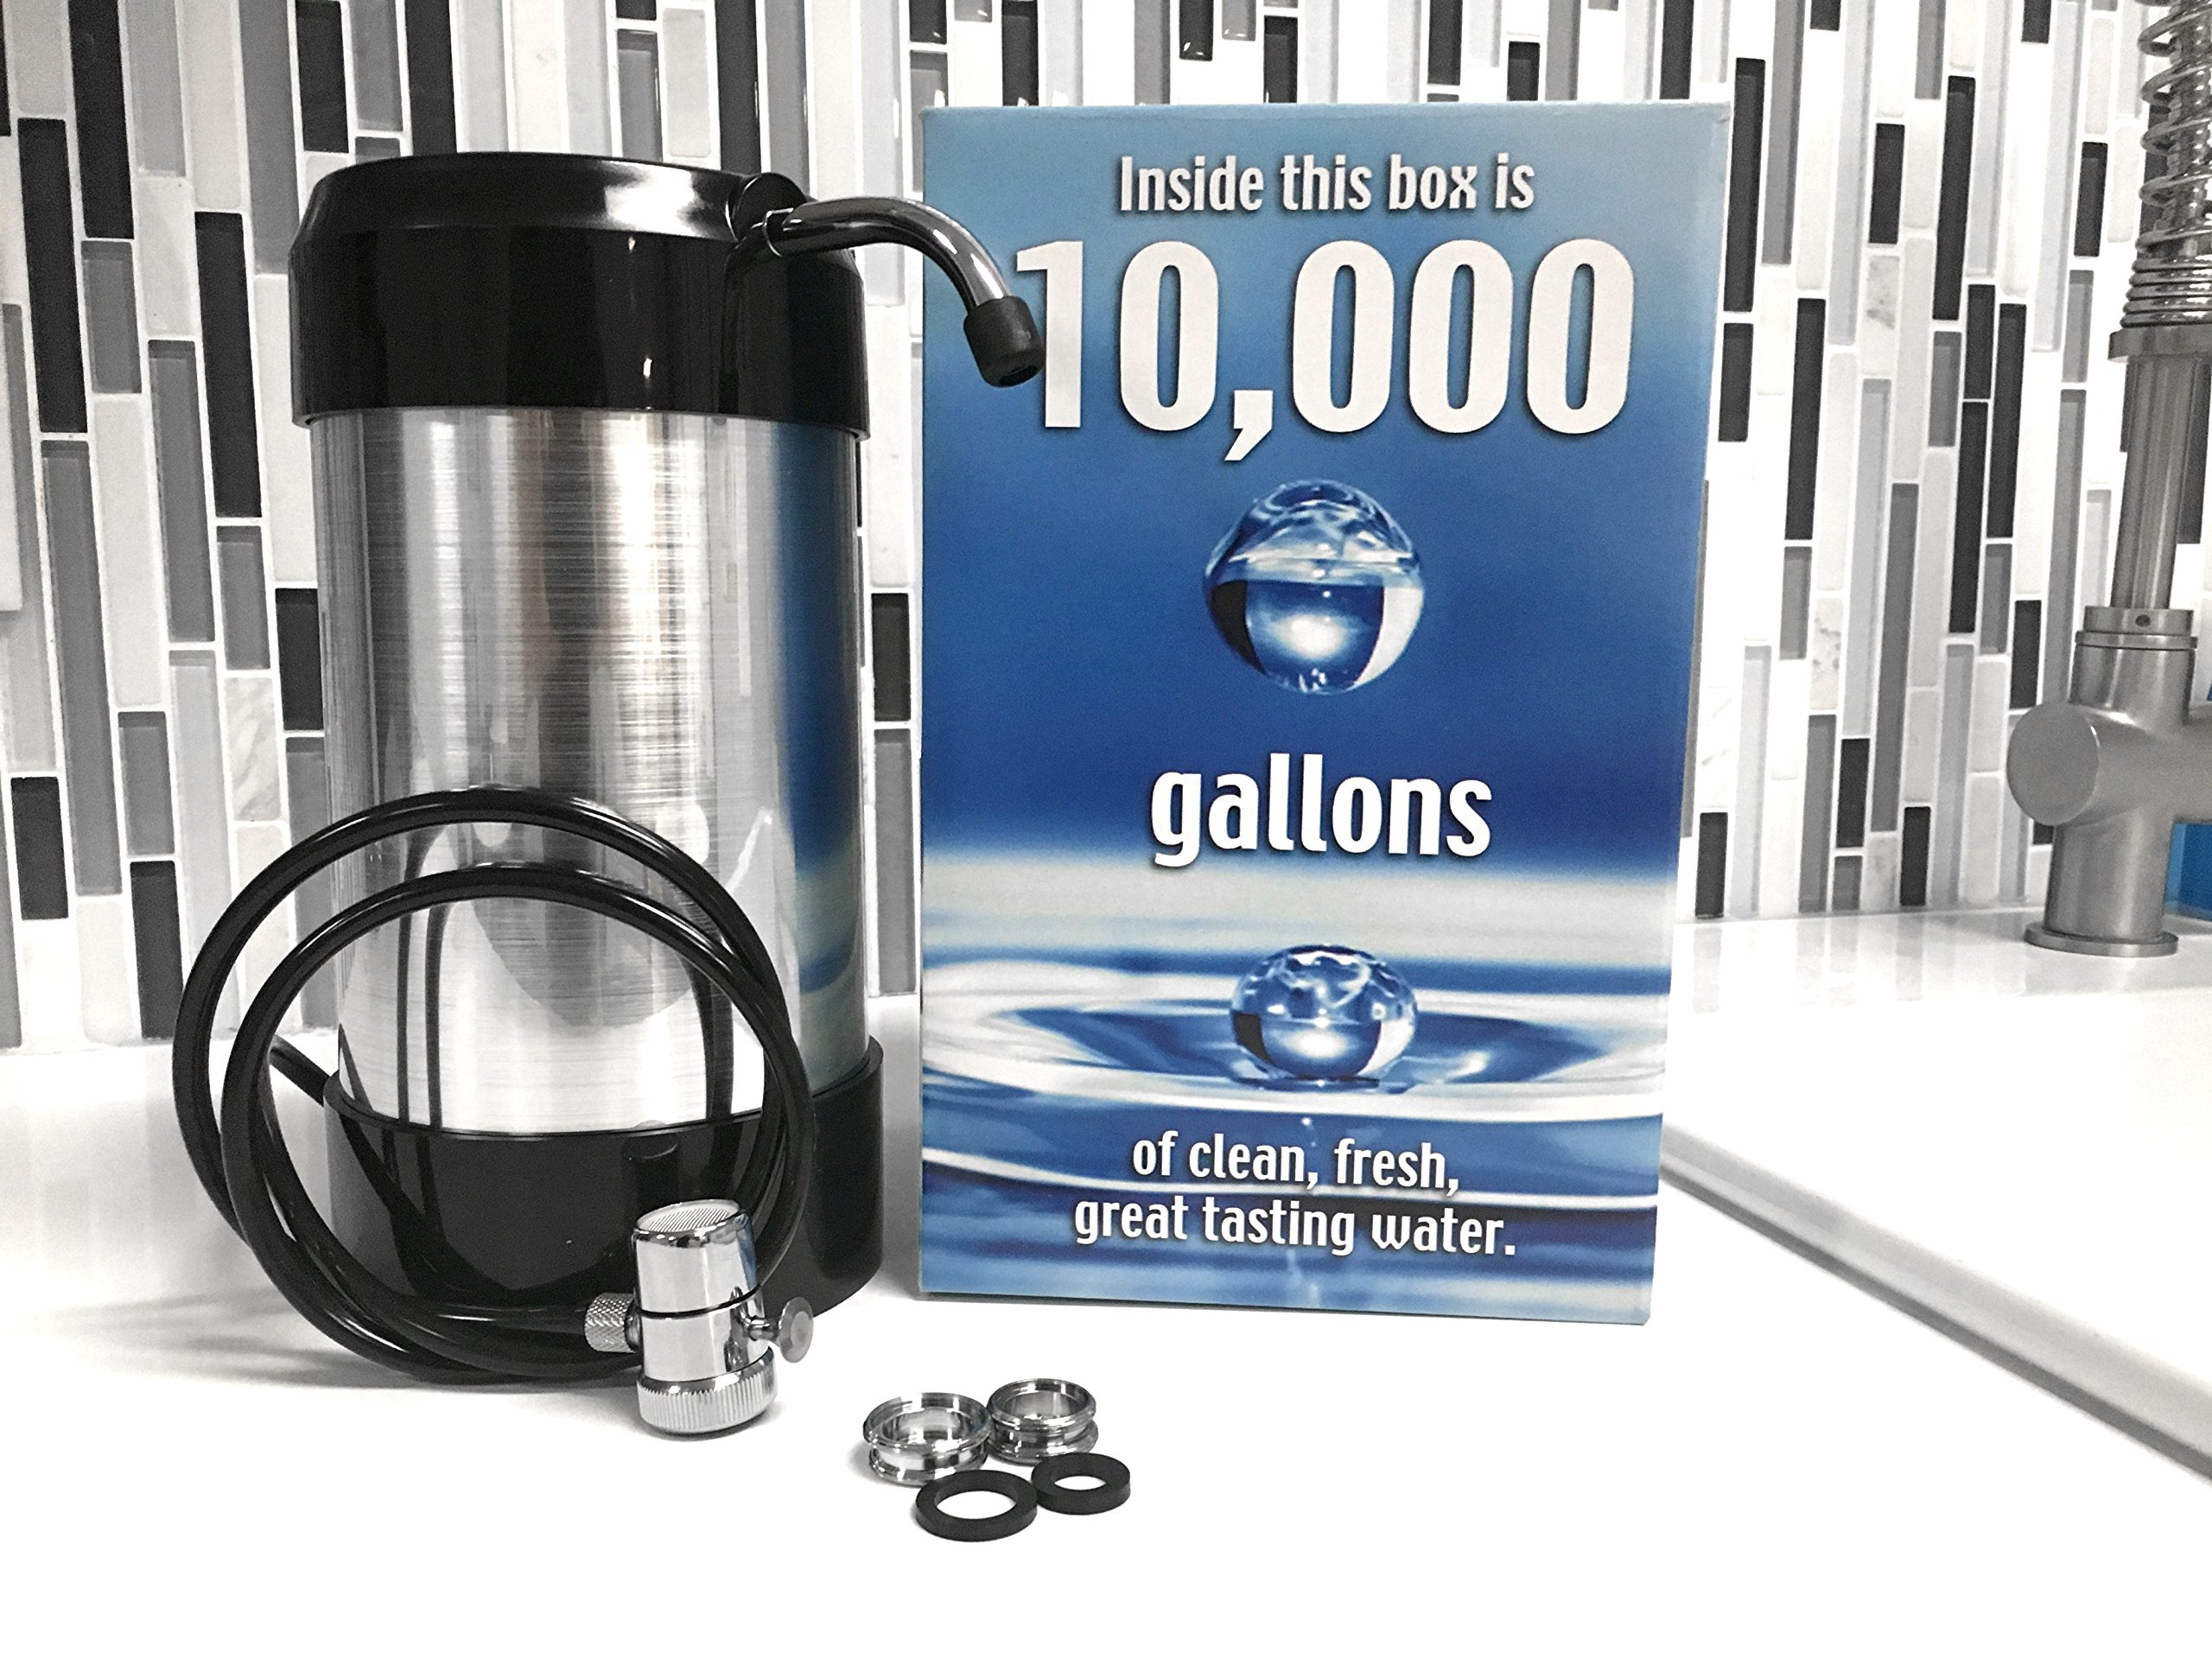 Premium Countertop Water Filtration System Easy Install No